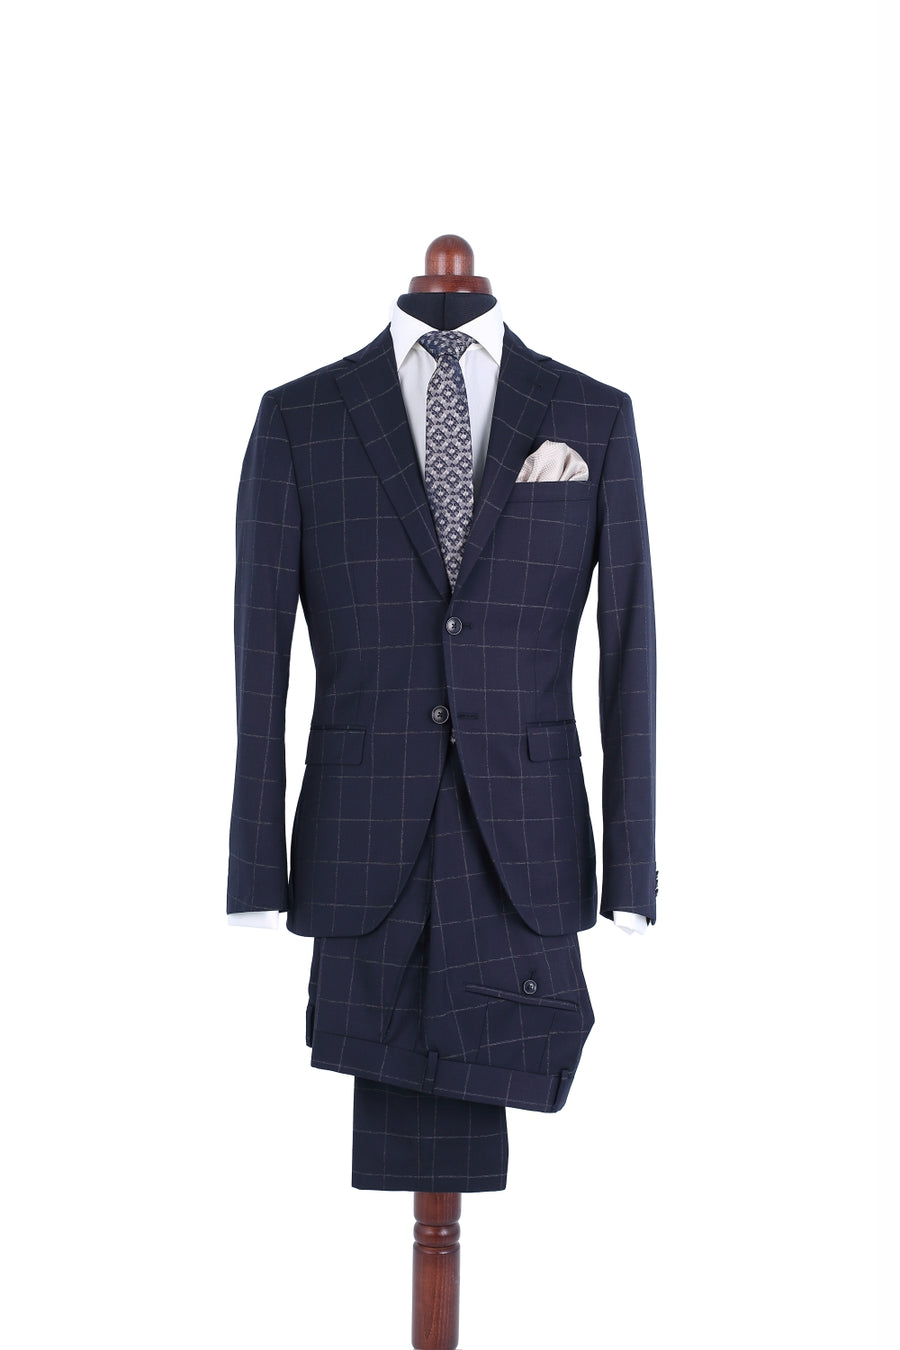 DARK BLUE SUBTLE WINDOWPANE SUIT